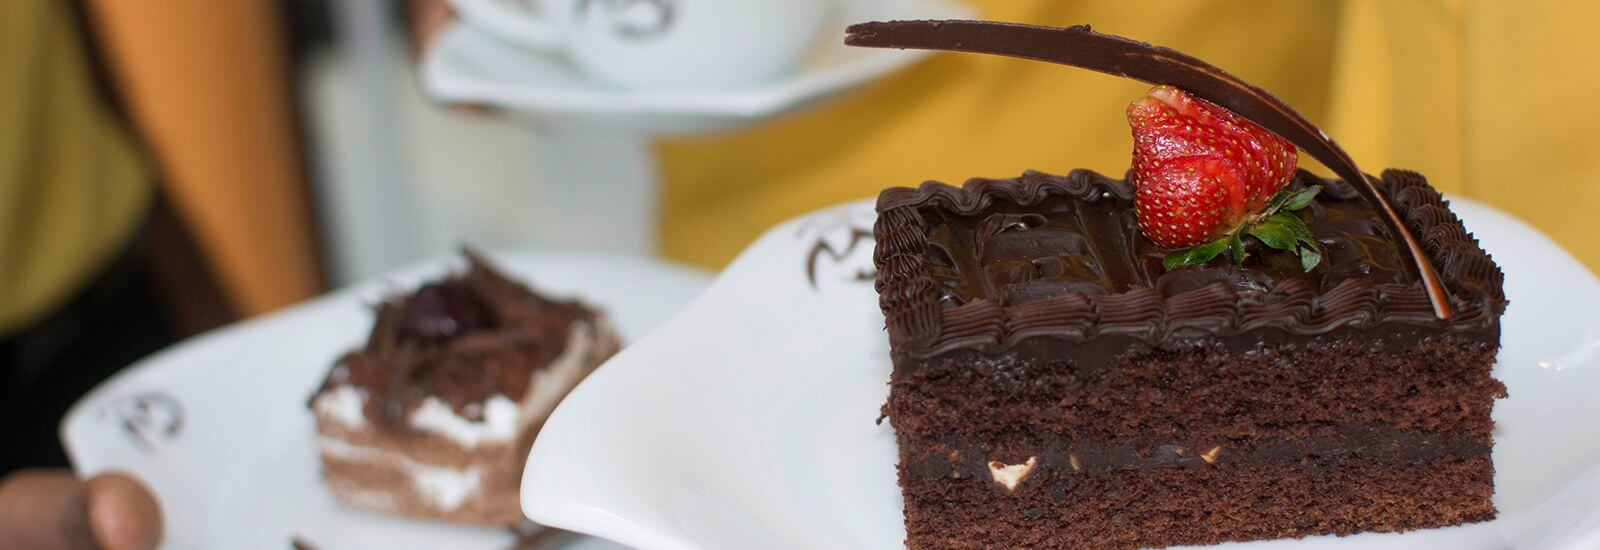 Cakes and Other Desserts at Cafe M in Mahaweli Reach Hotel